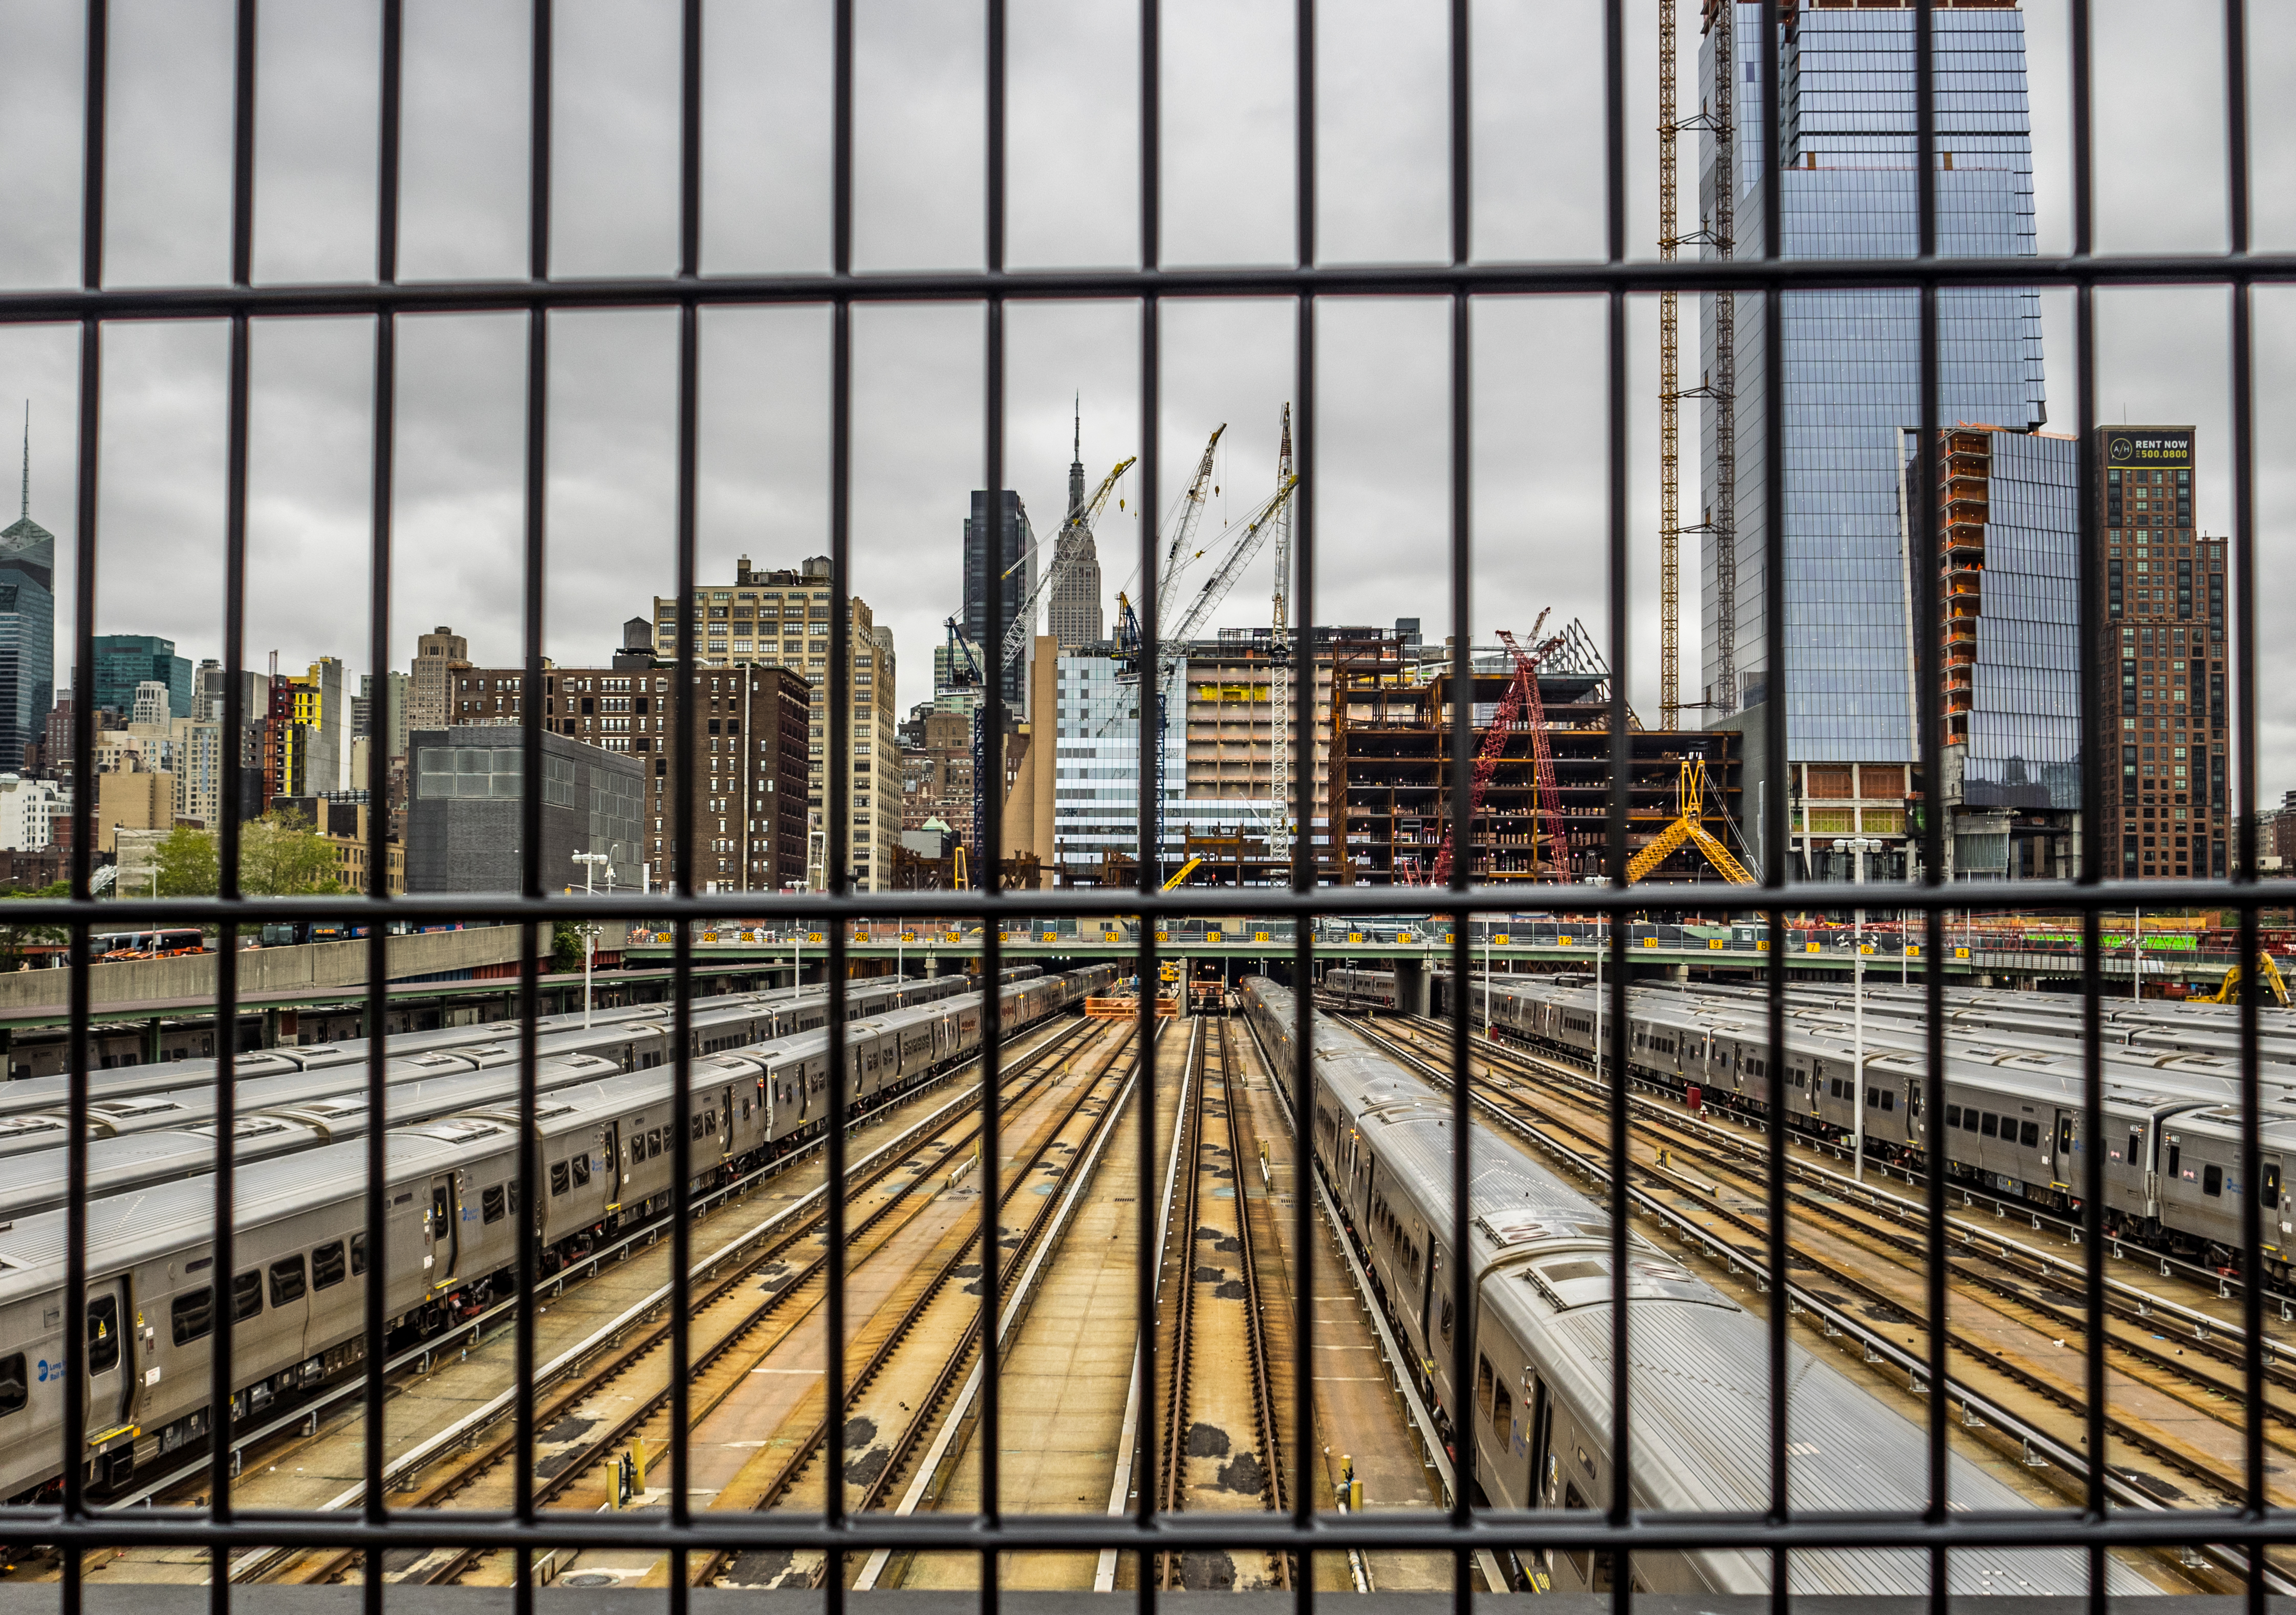 Hudson Yards prior to The Vessel